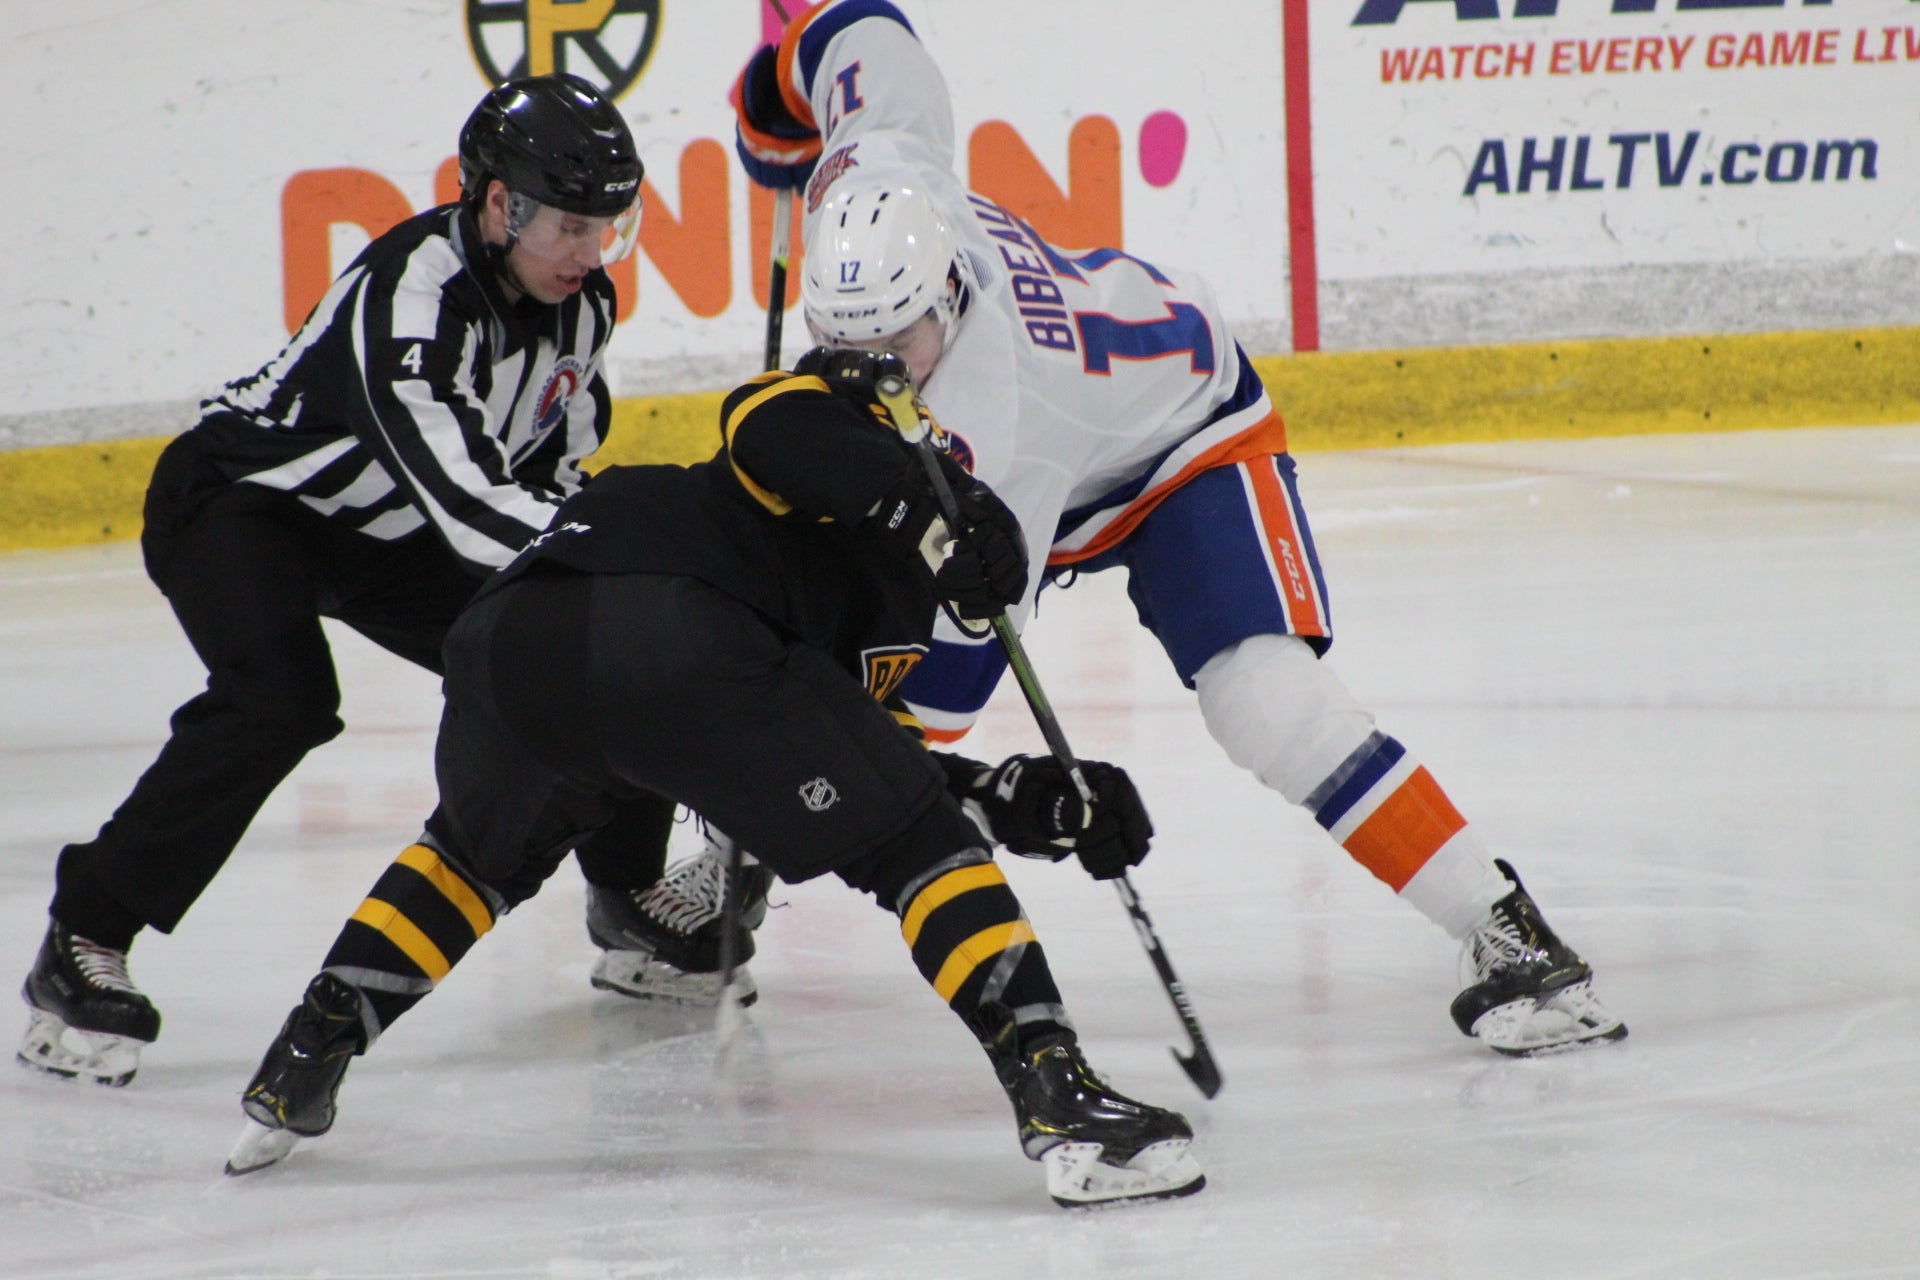 P-BRUINS FALL TO BRIDGEPORT SOUND TIGERS, 3-2